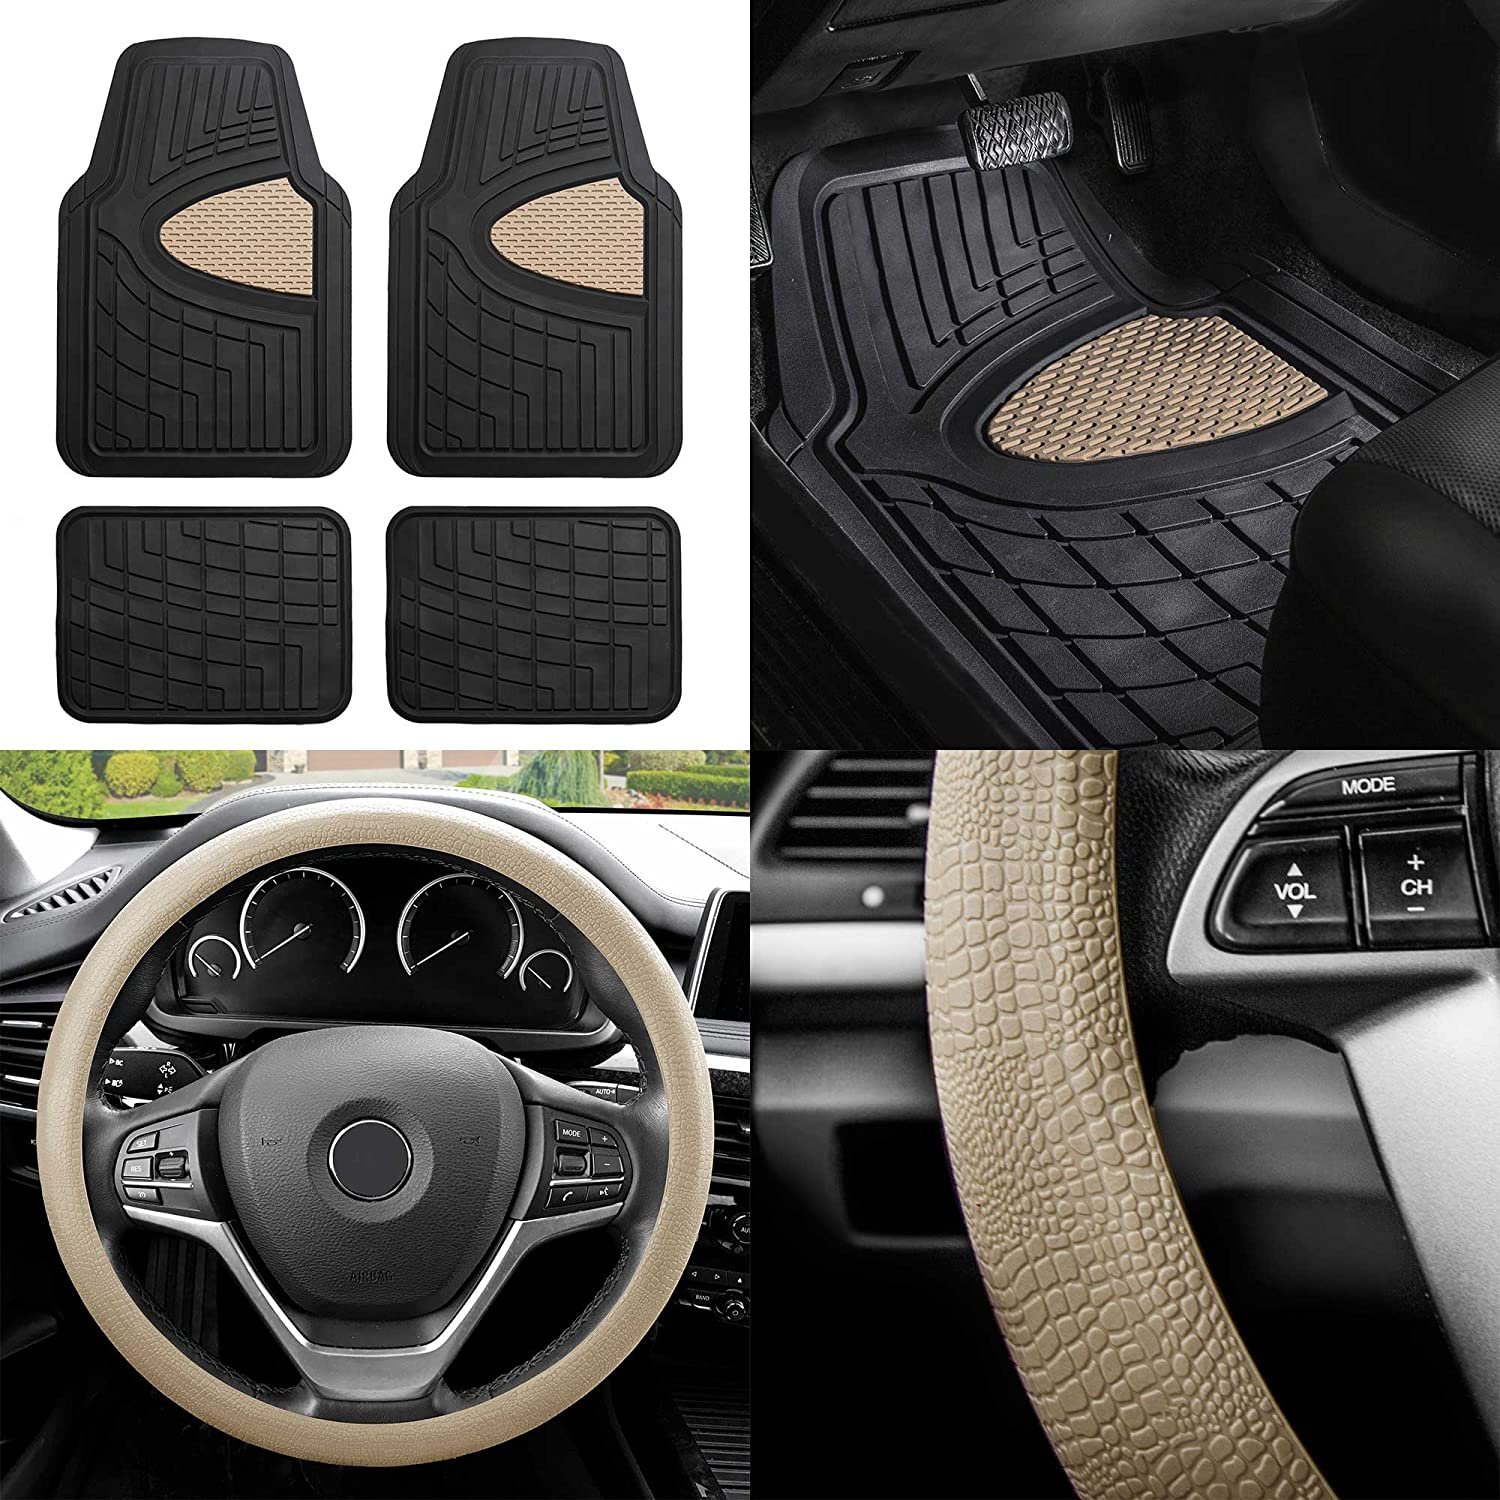 FH Group F11311 Premium Tall Channel Rubber Trimmable Floor Mats w. FH3001 Snake Pattern Silicone Steering Wheel Cover, Beige/Black- Universal Fit for Trucks, SUVs, and Vans